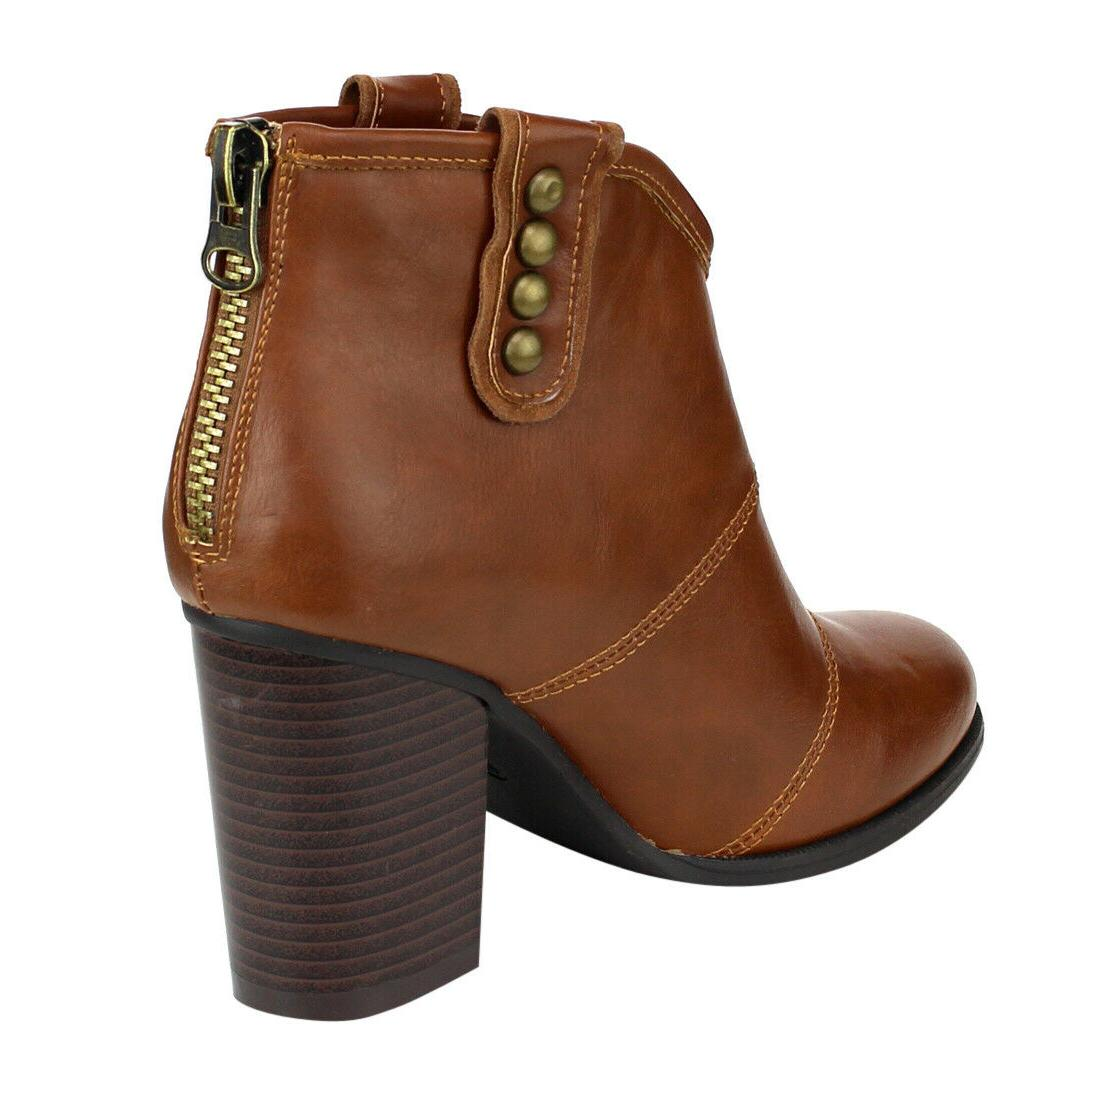 Women's Booties Back Boots Boots New